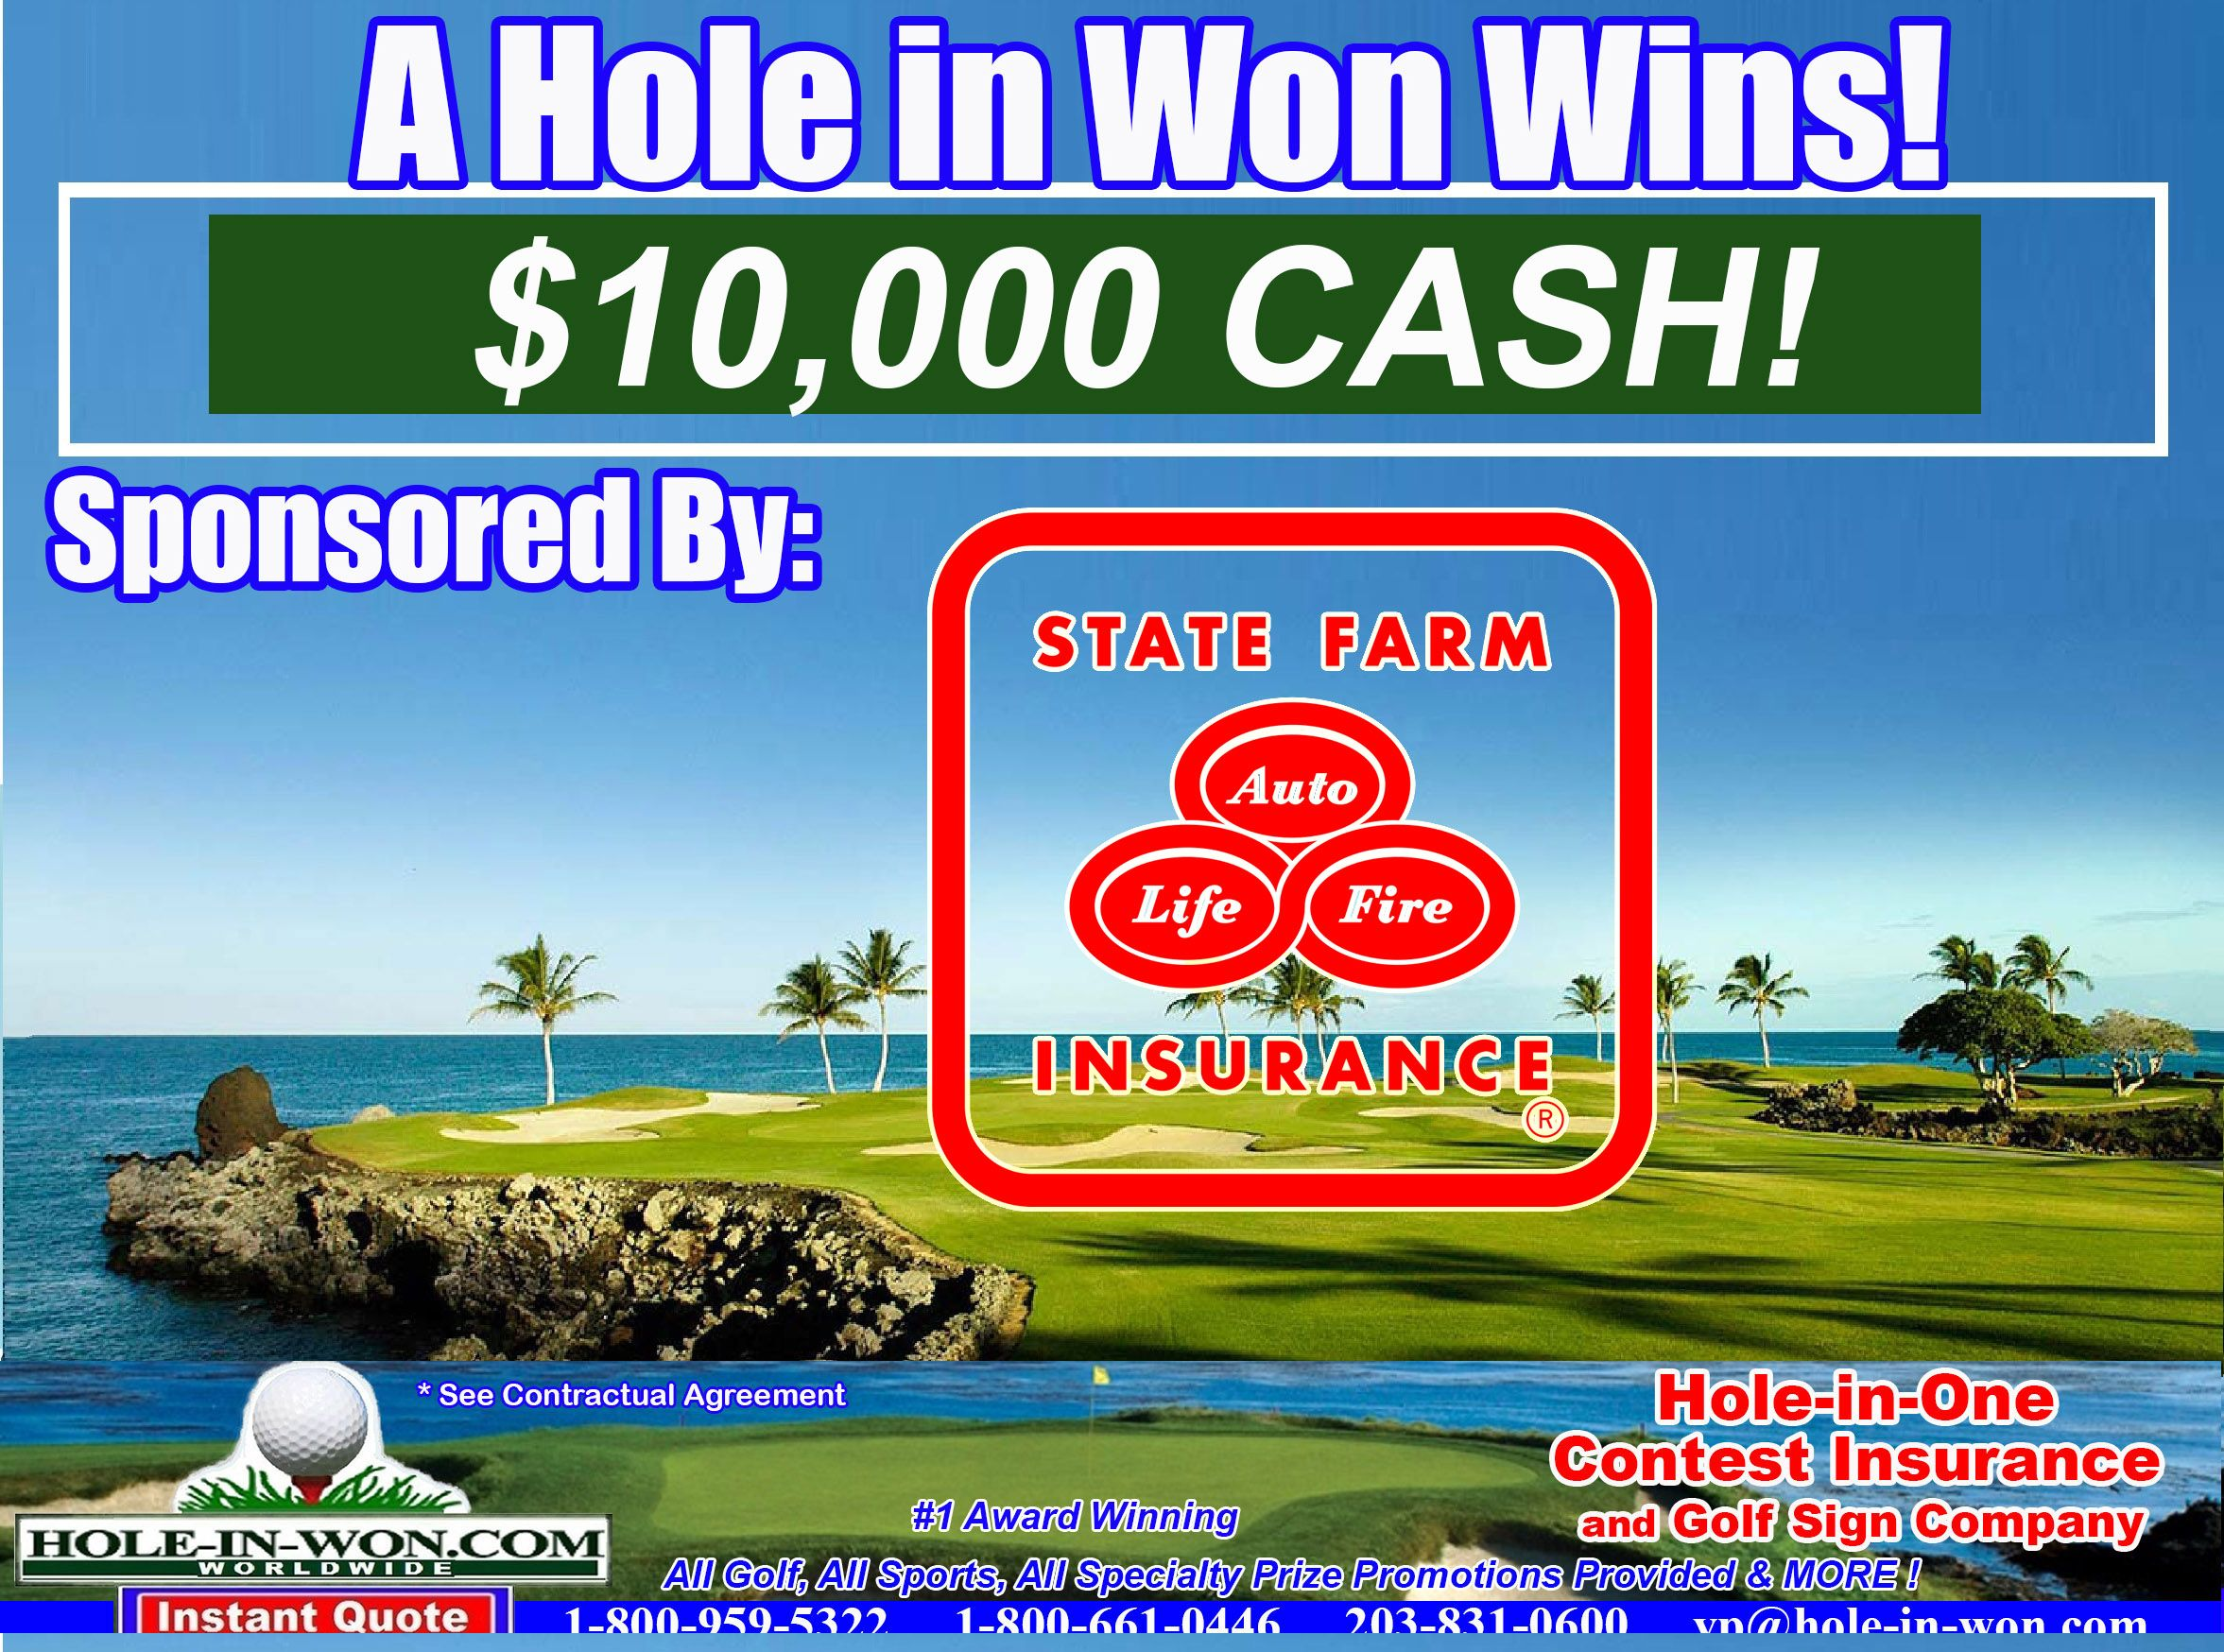 Hole in One Insurance Company American Hole in One